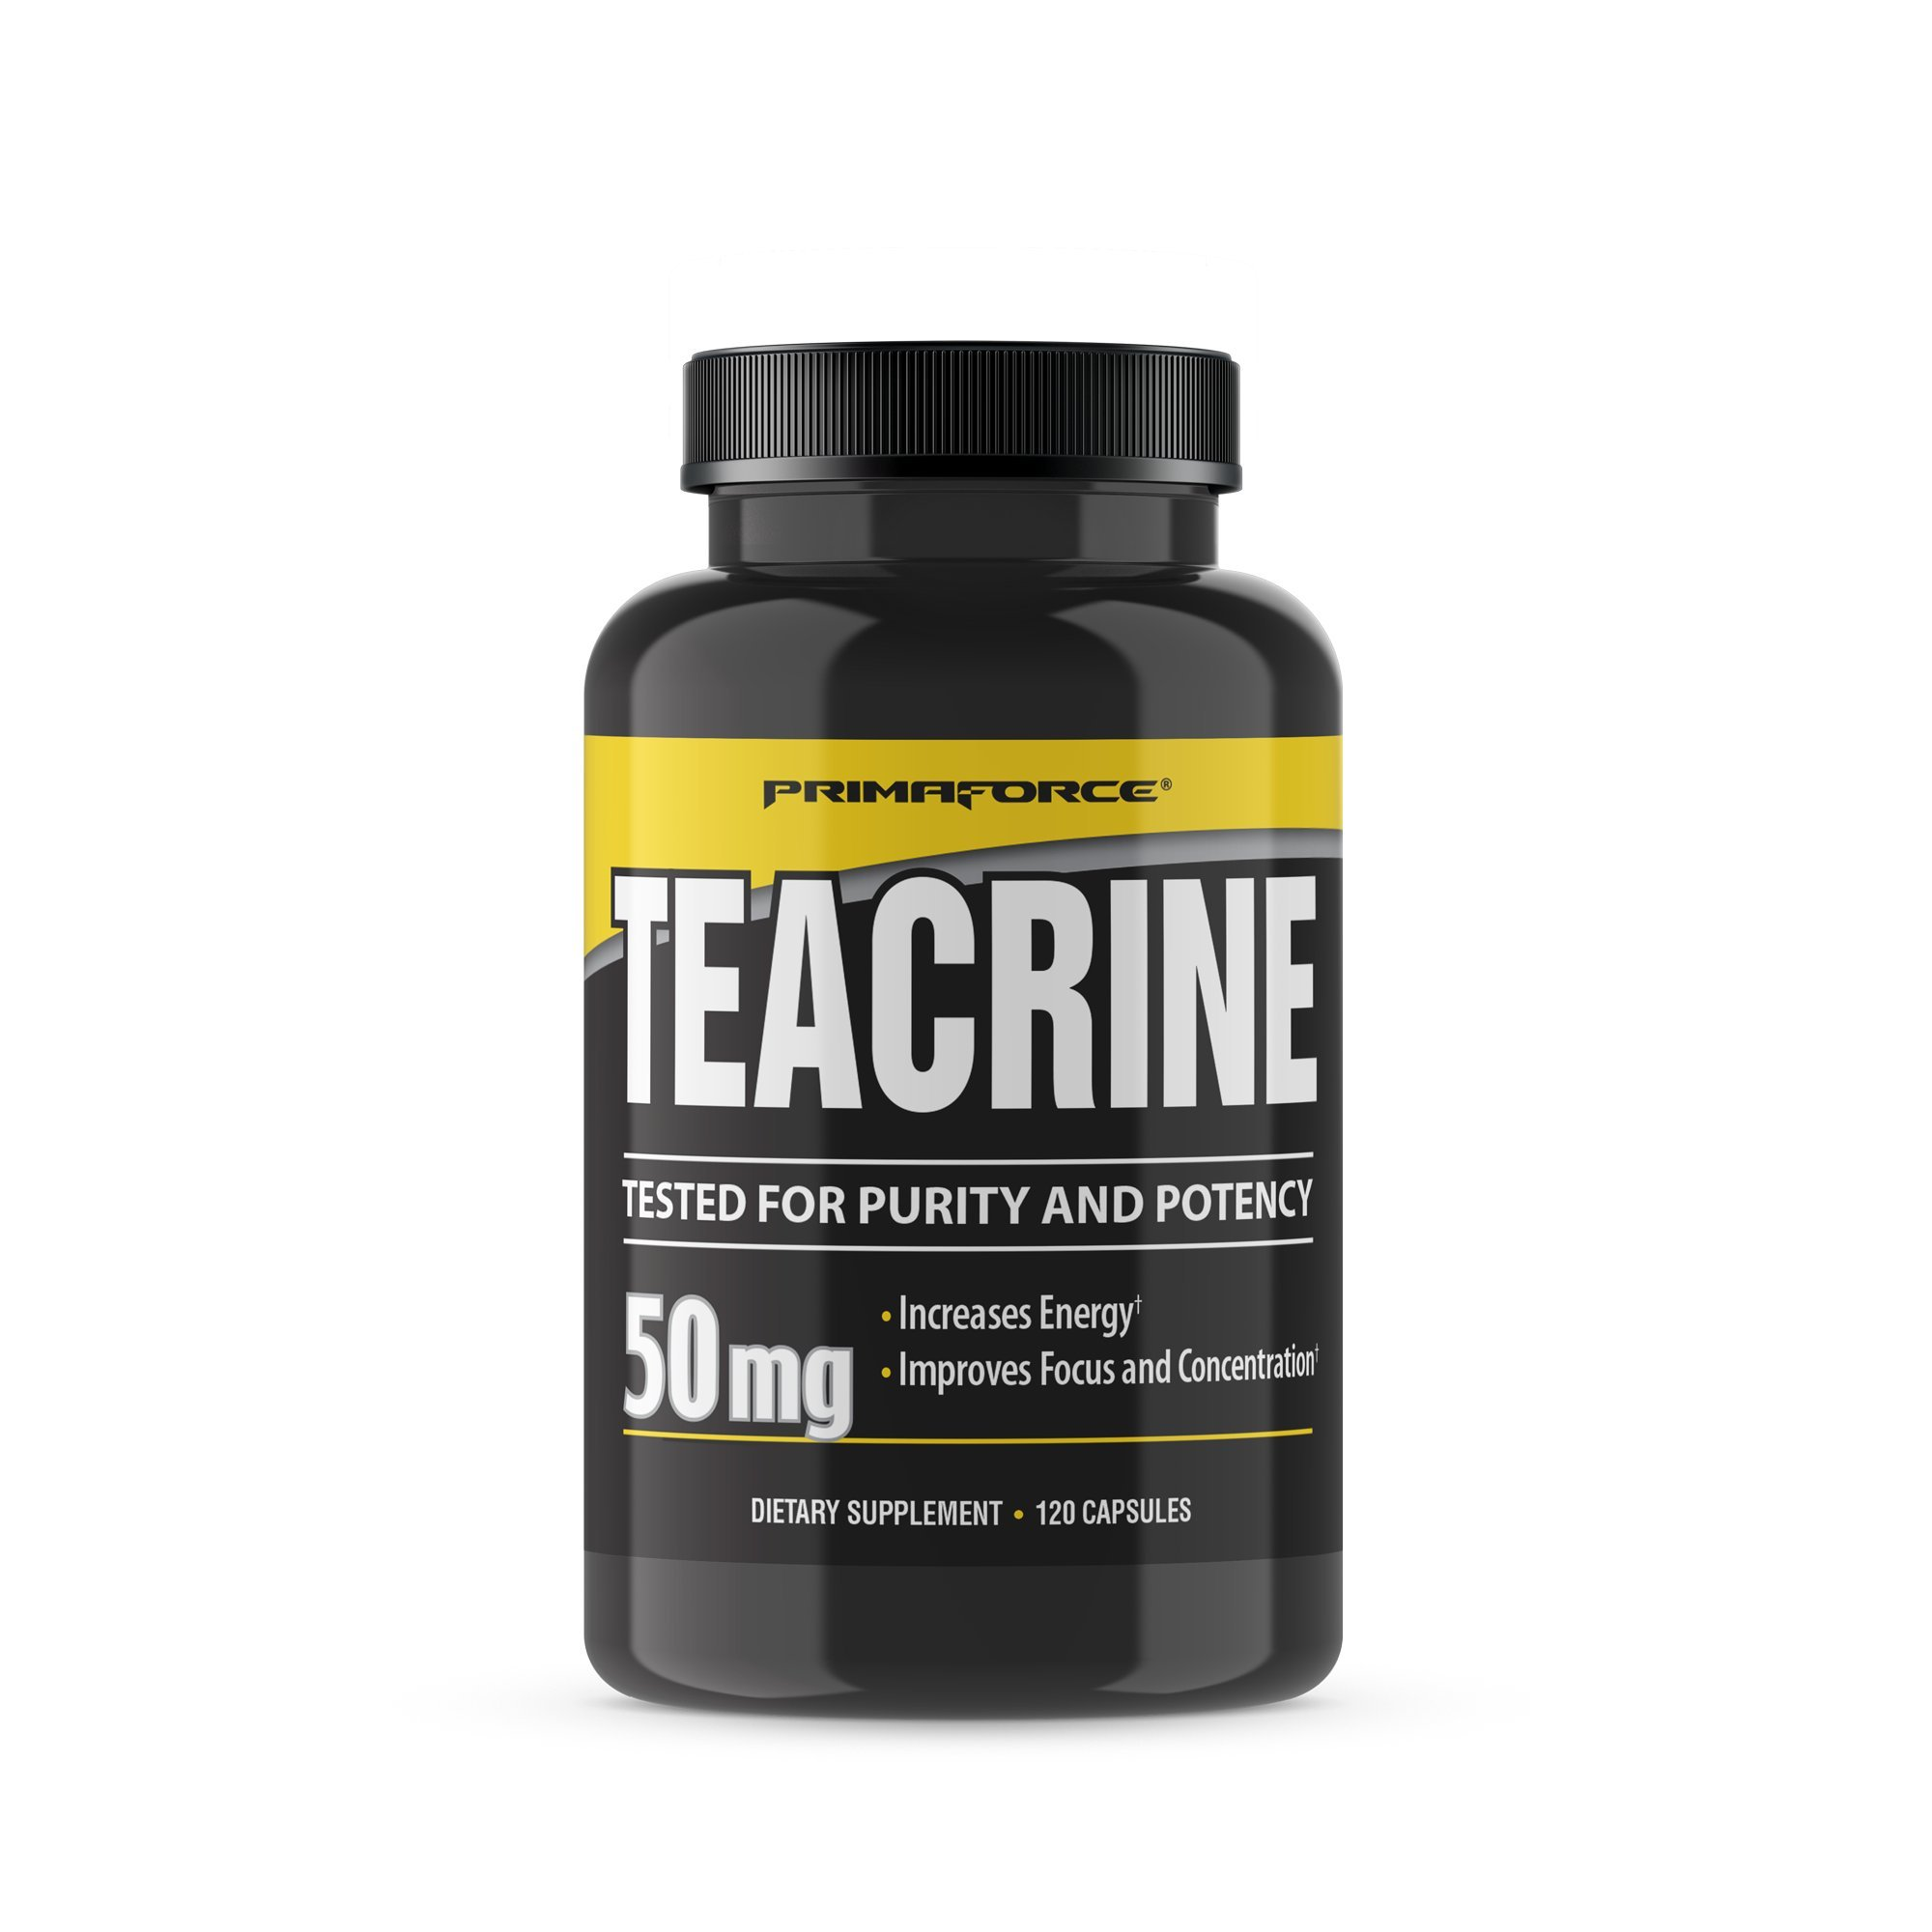 PrimaForce Teacrine Supplement, 120 Capsules – Increases Energy / Improves Focus and Concentration